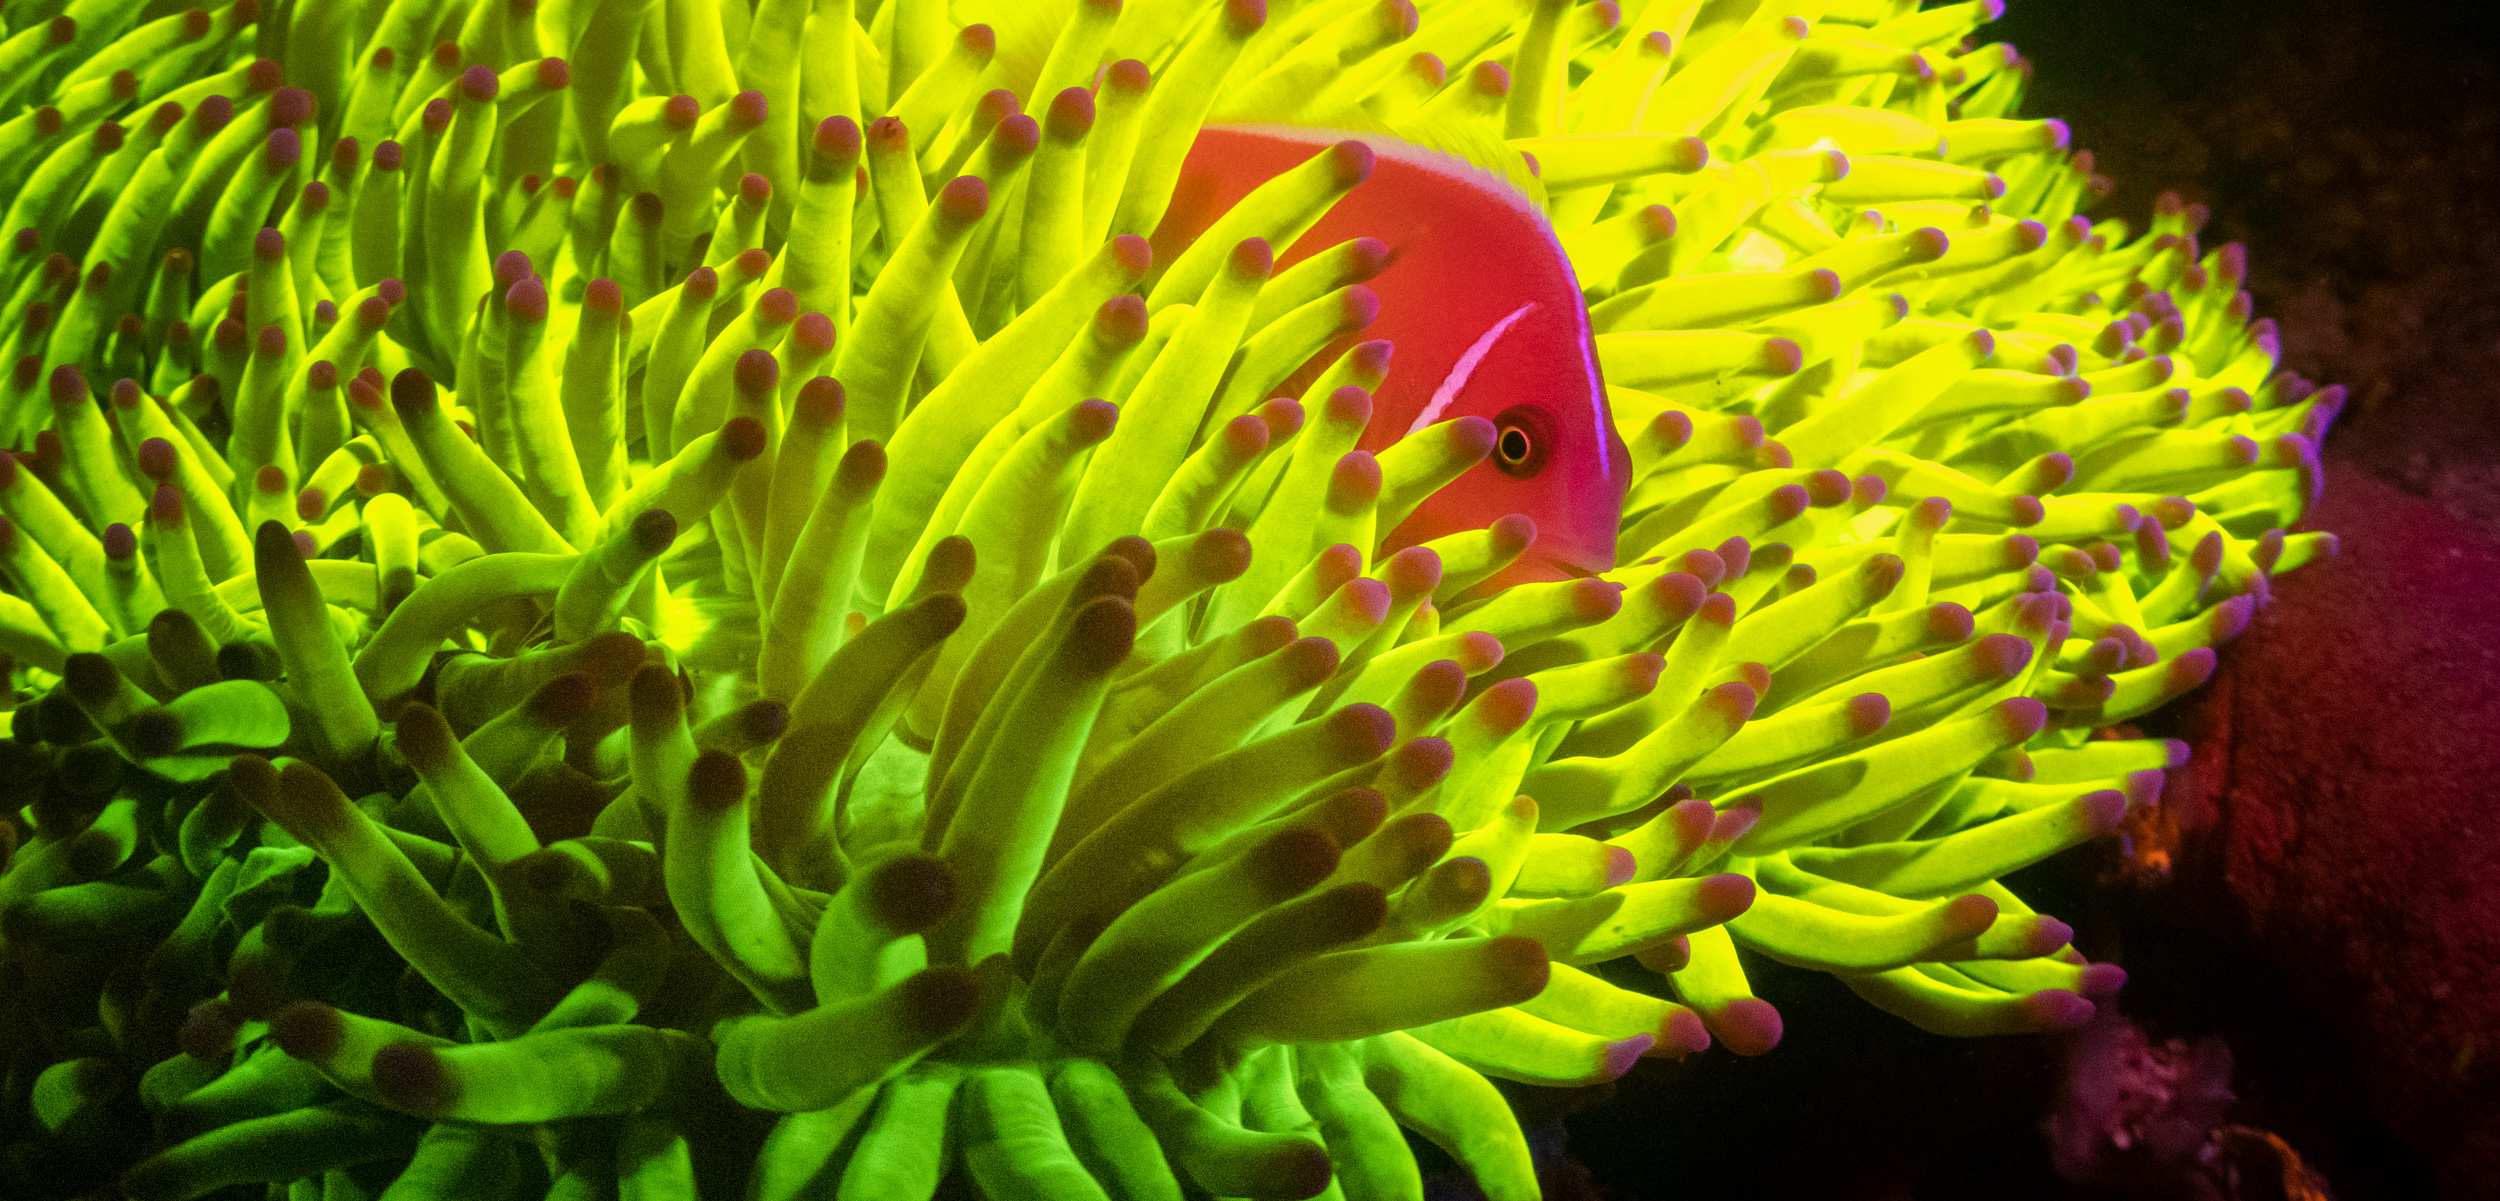 fluorescent photo of pink anemonefish